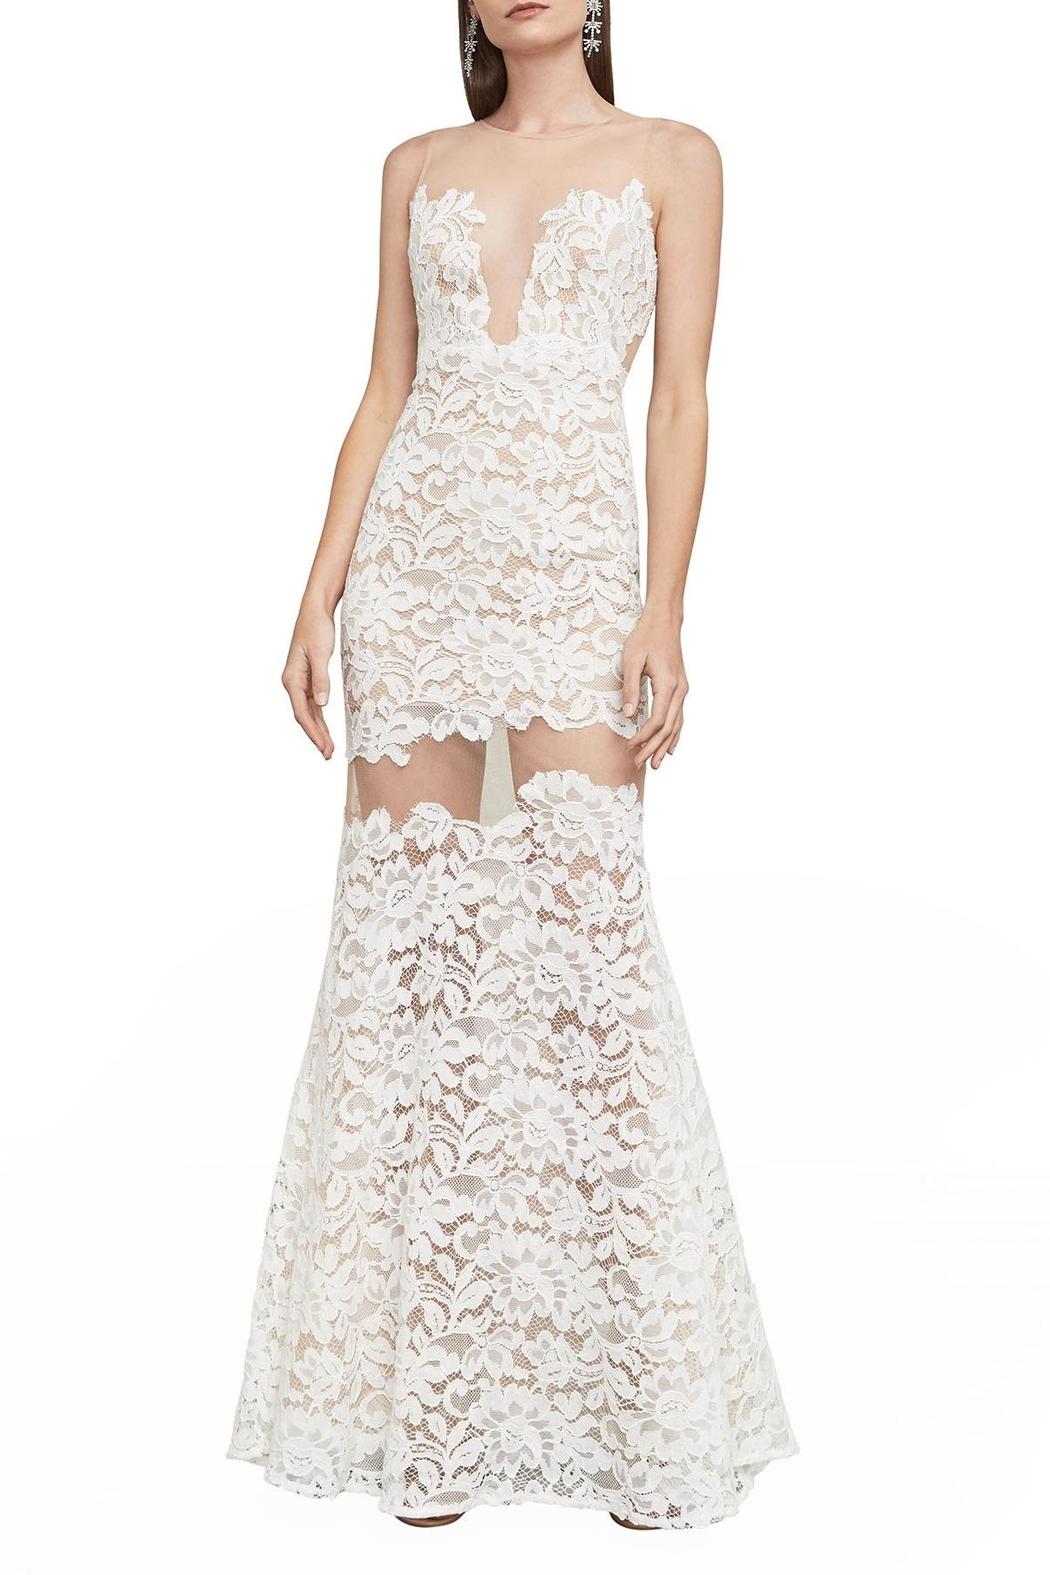 BCBG MAXAZRIA Floral Lace Gown - Front Full Image